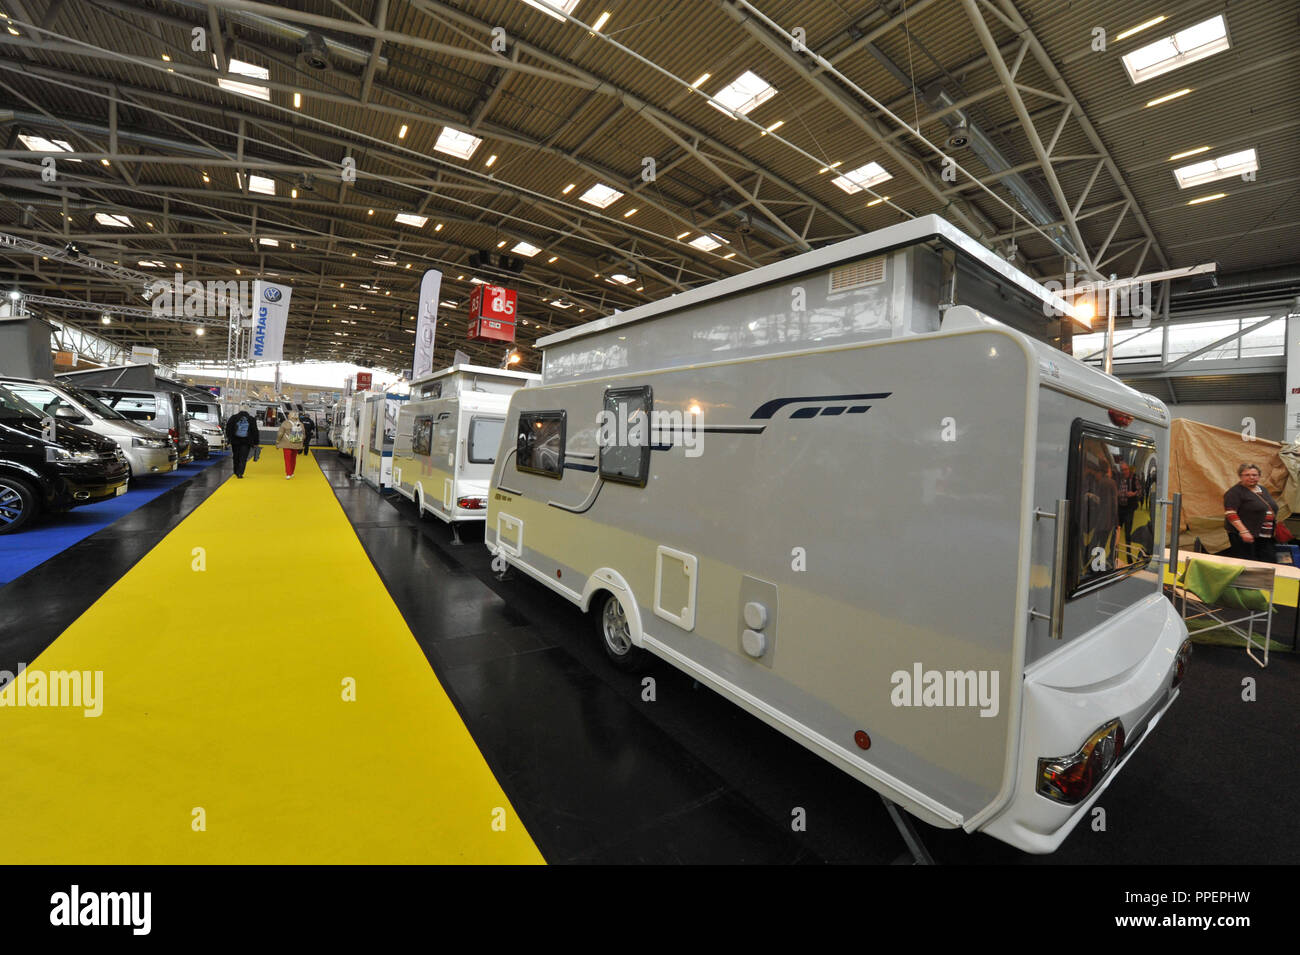 Mobile homes at the fair 'Free' in Munich, Germany Stock Photo